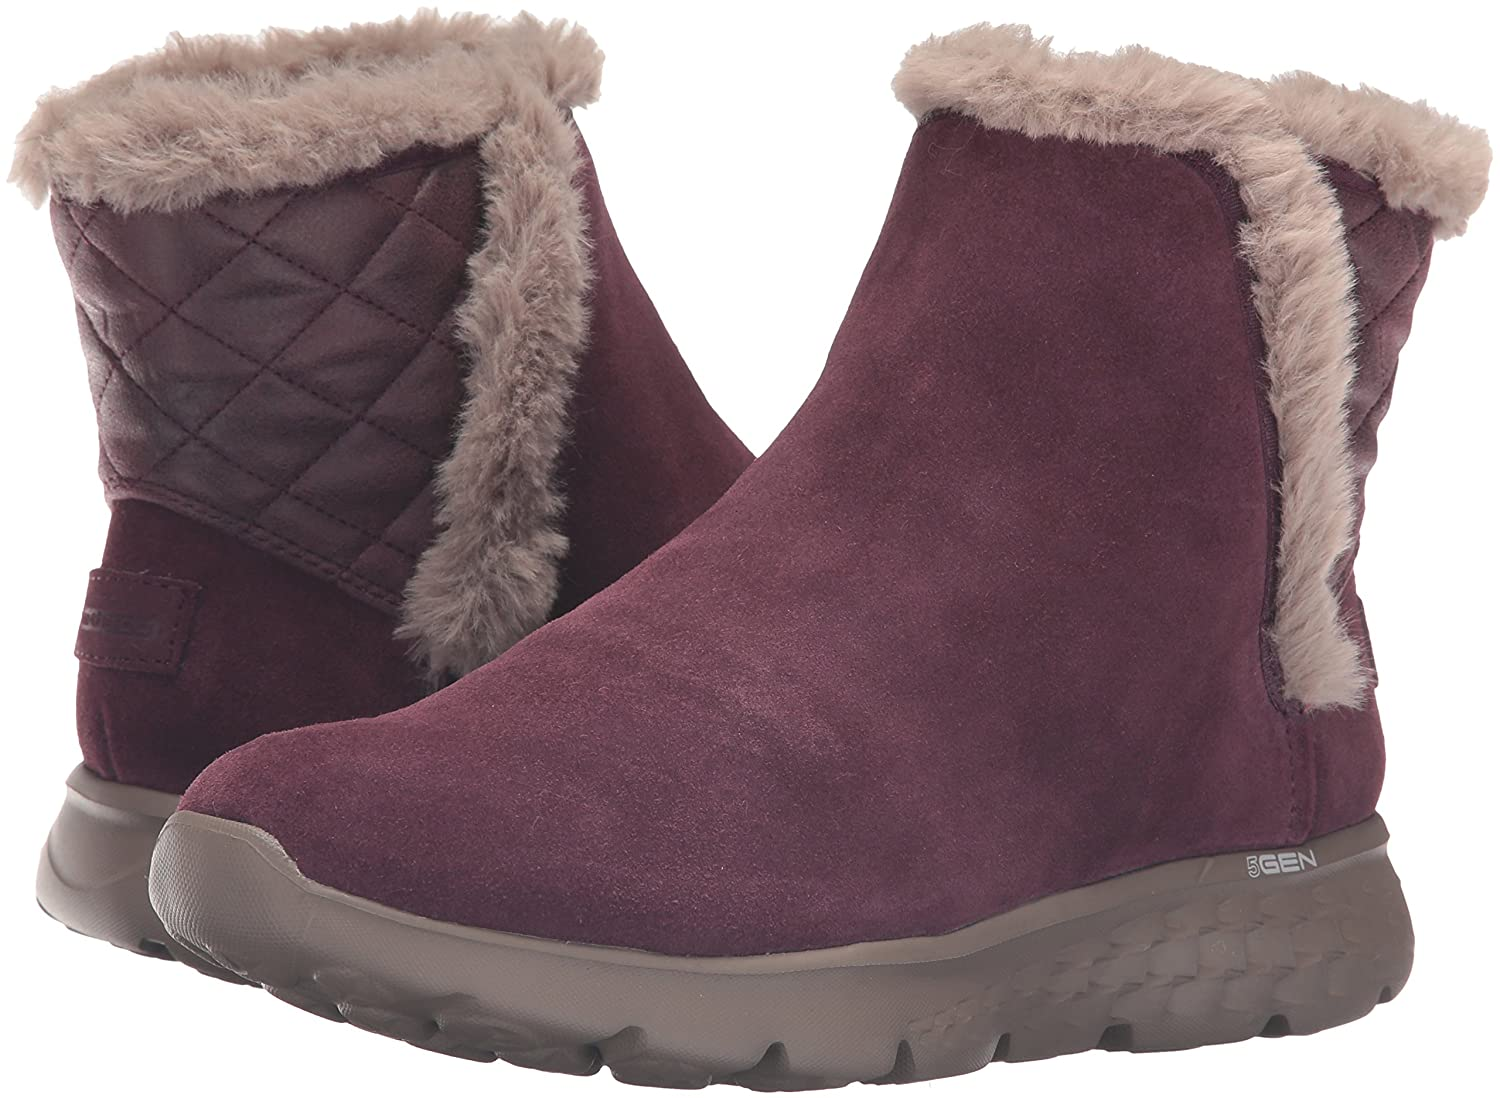 Skechers Performance Women's On The Go 400 Cozies Winter Boot B01B4MQYSY 9.5 B(M) US|Burgundy